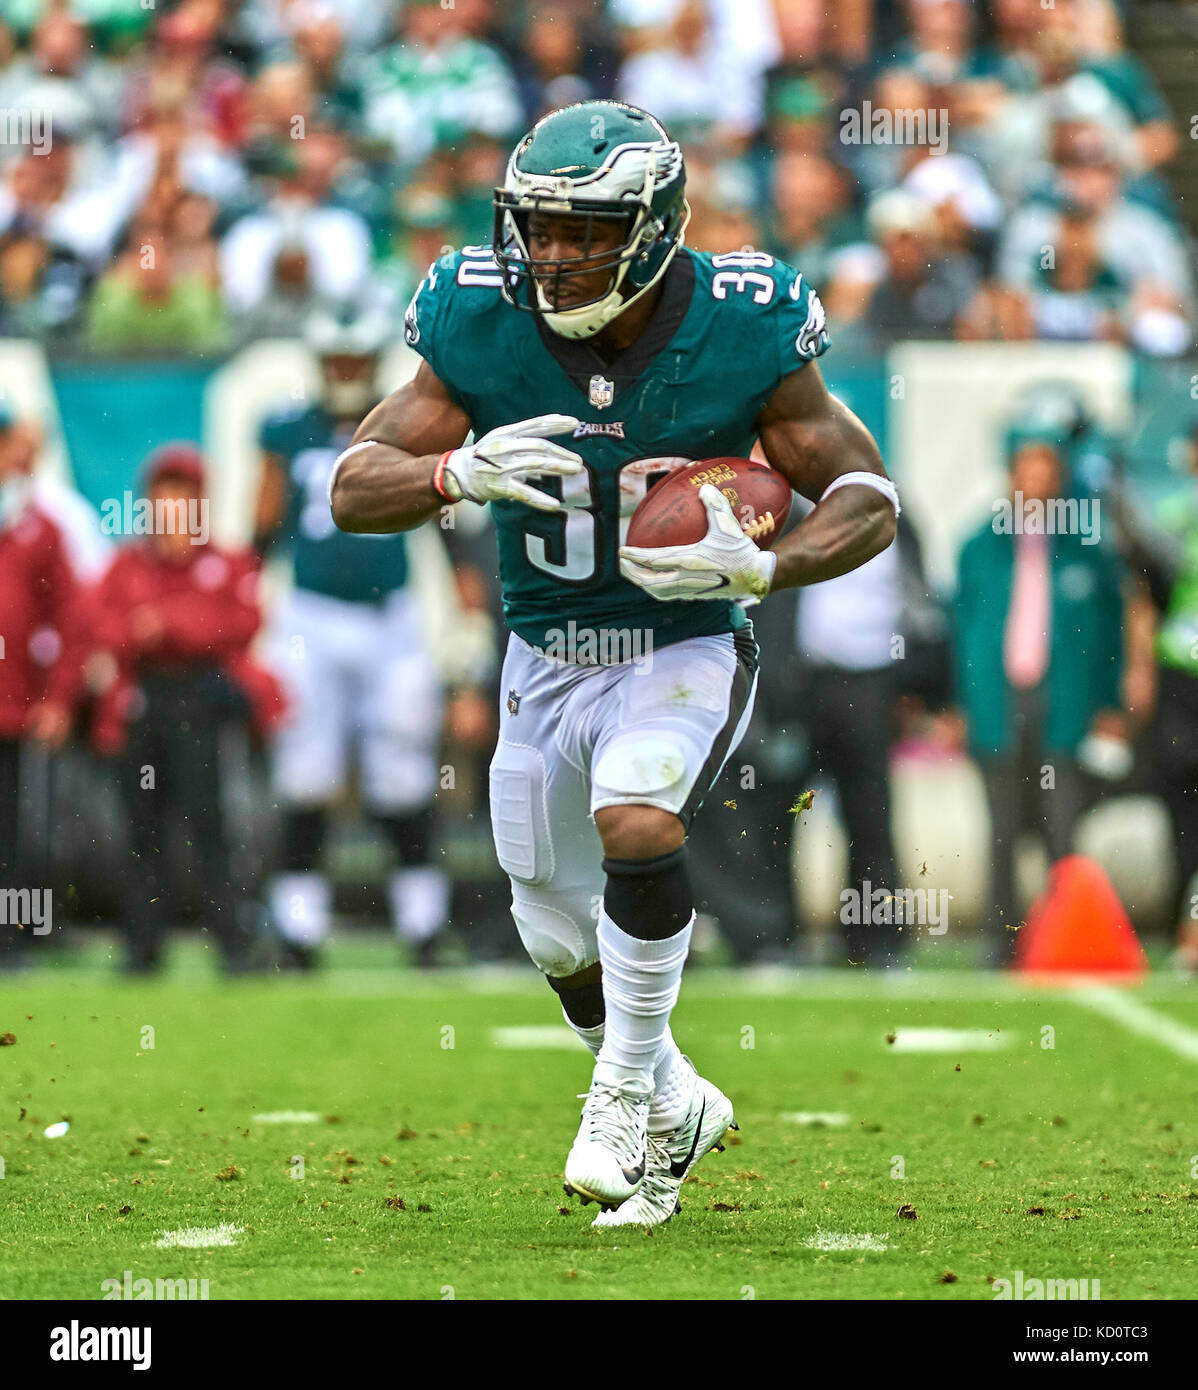 Philadelphia, Pennsylvania, USA. 8th Oct, 2017. Eagles' running back Corey Clement (30) during a NFL game between - Stock Image